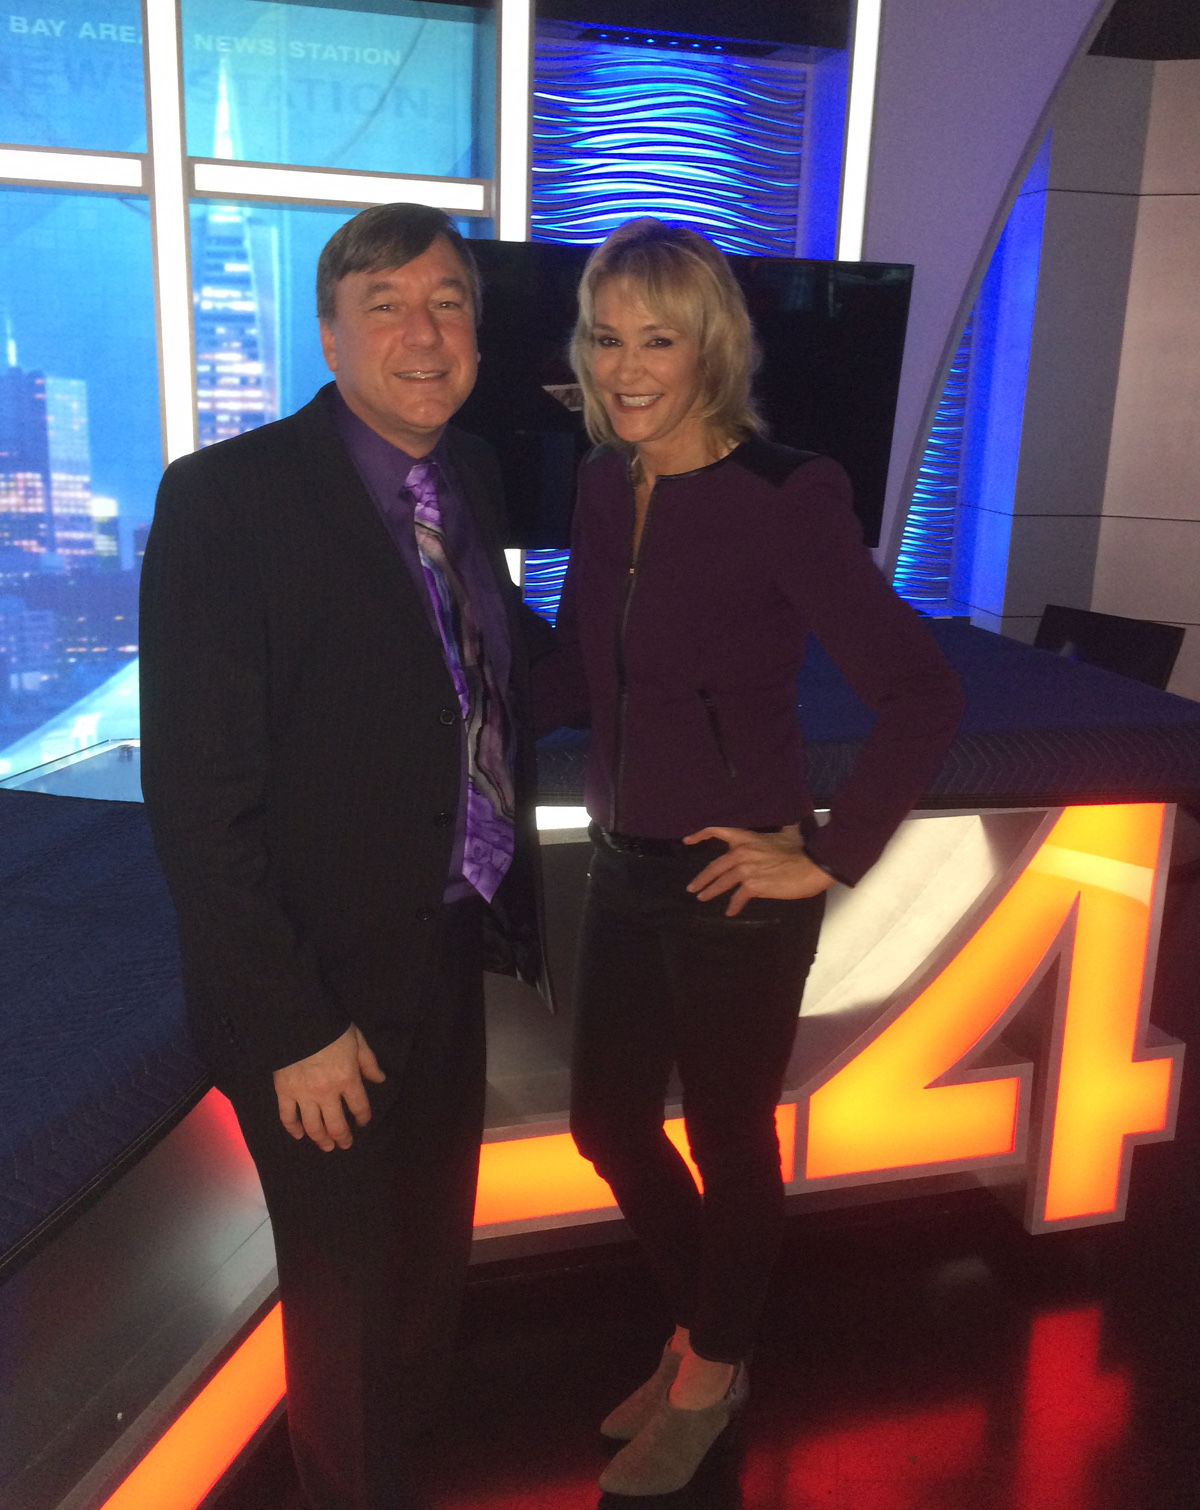 Dr. Mele and Body Beautiful host Janelle Marie in the KRON 4 Bay Area News studio.